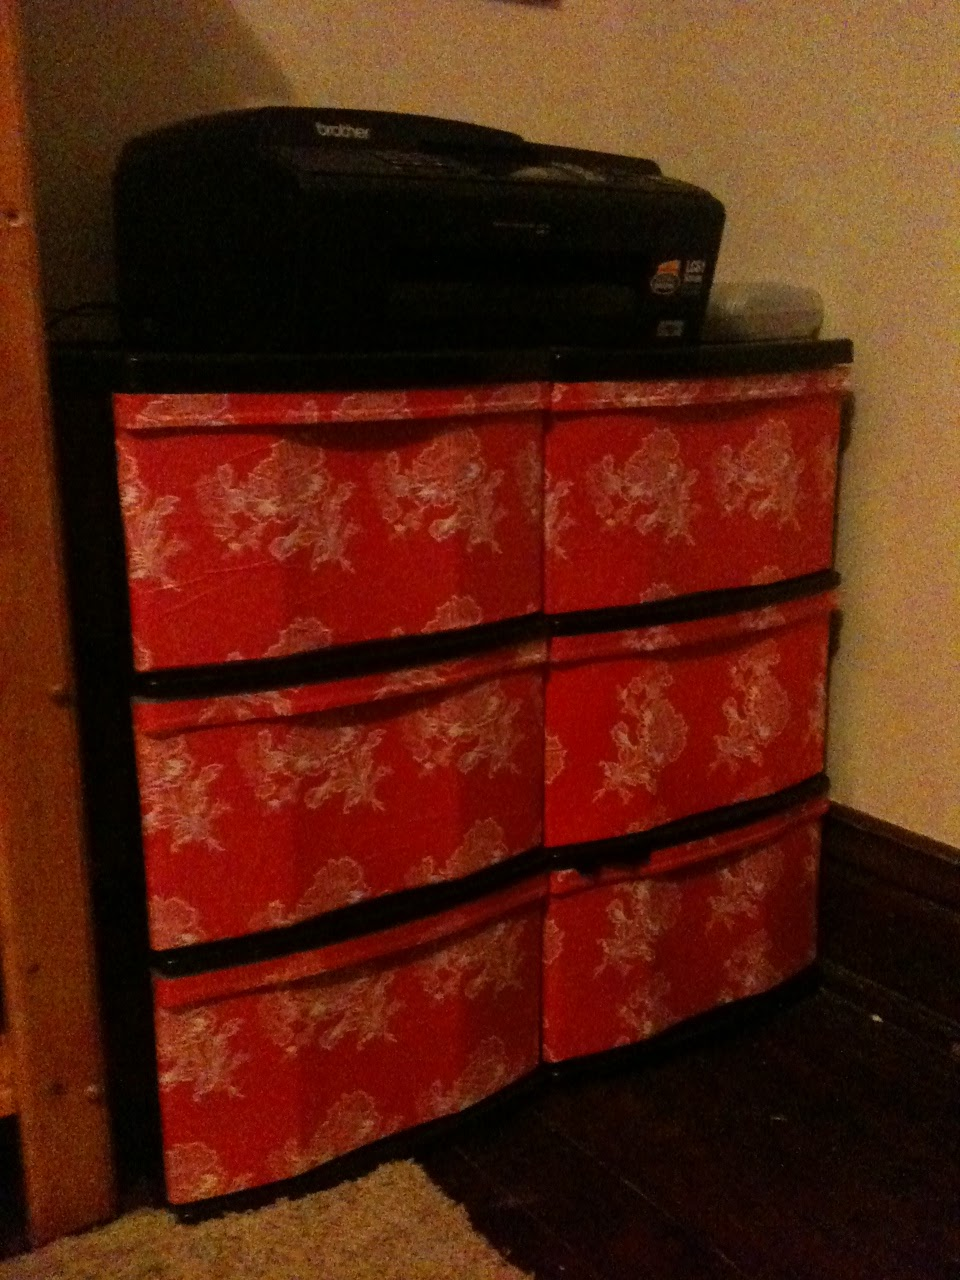 Pink Storage Bins Girls Flower Drawers Chest Dresser: Gettin' Domestic: DIY Wrapping Paper Mod Podge Plastic Drawers